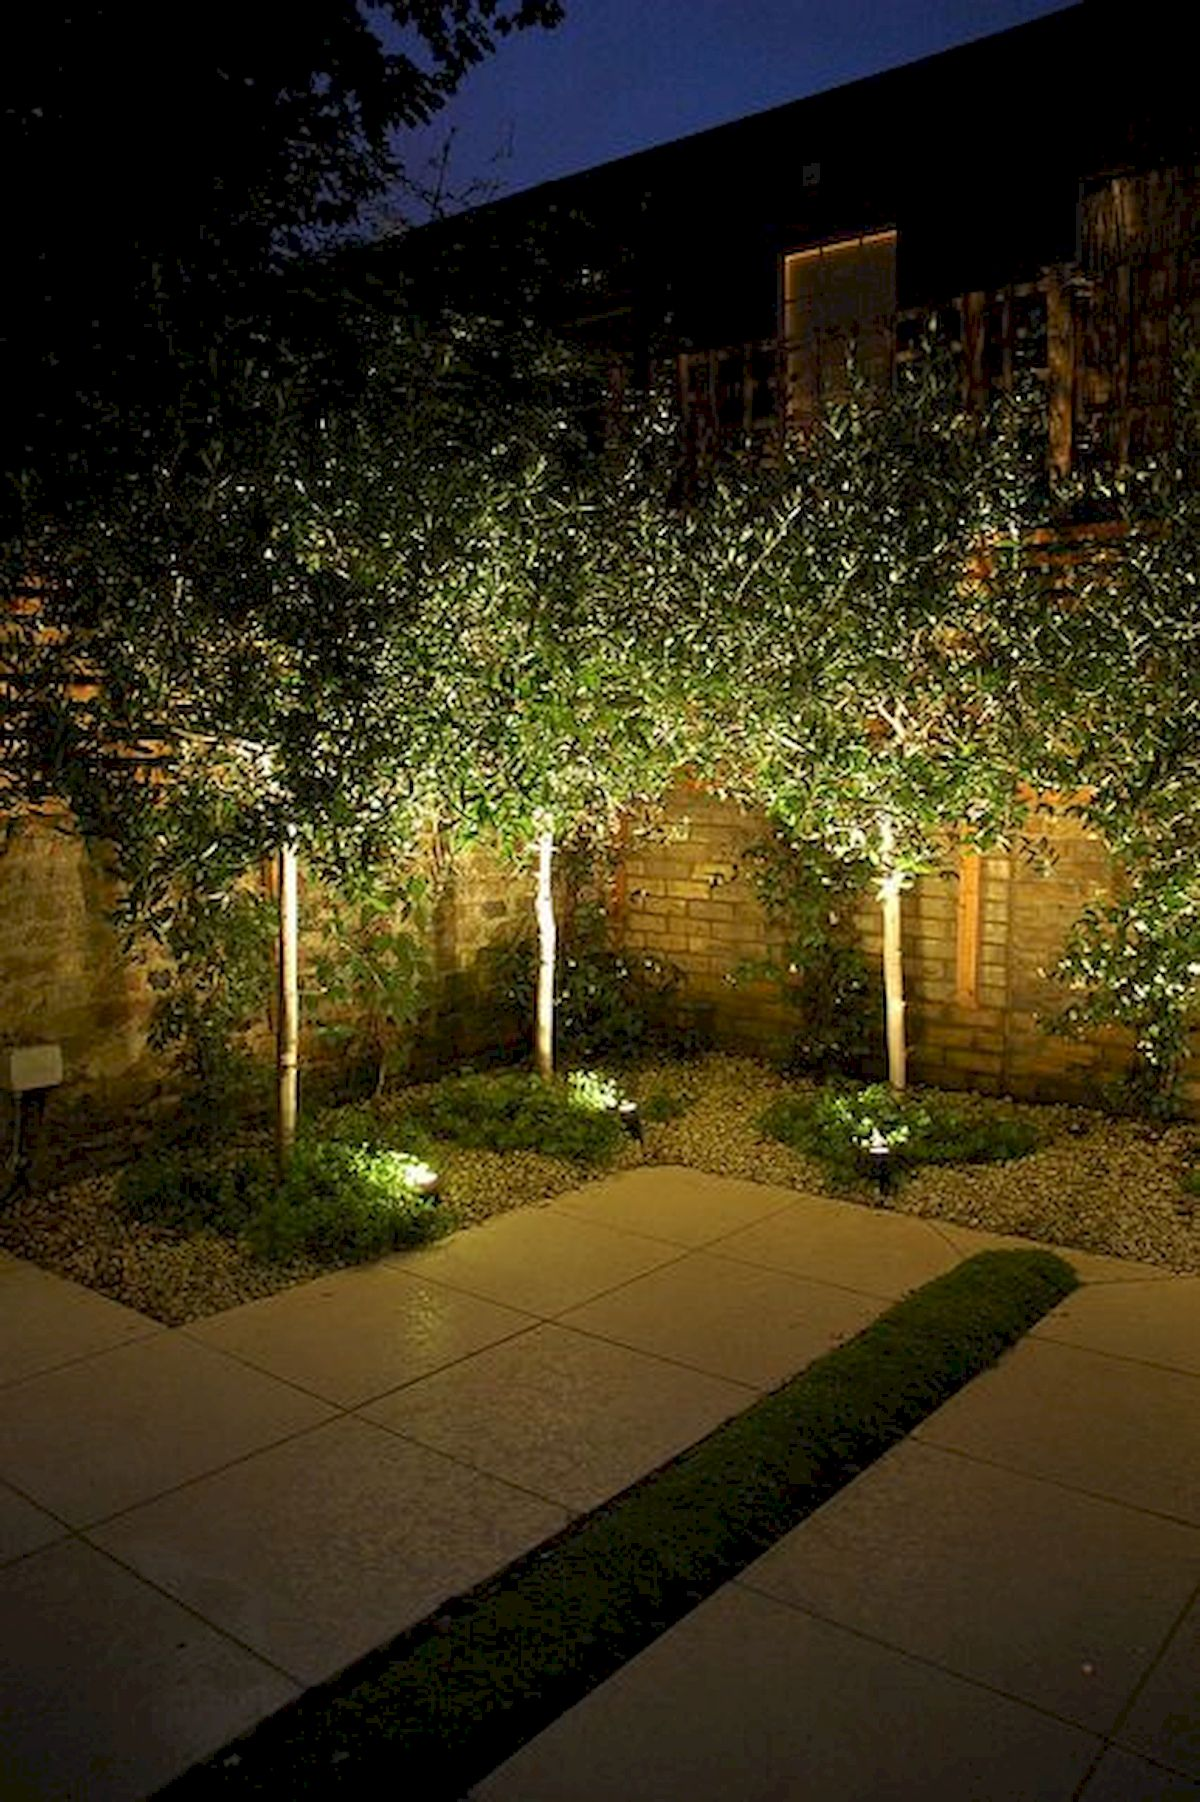 33 Inspiring Garden Lighting Design Ideas 3ecor